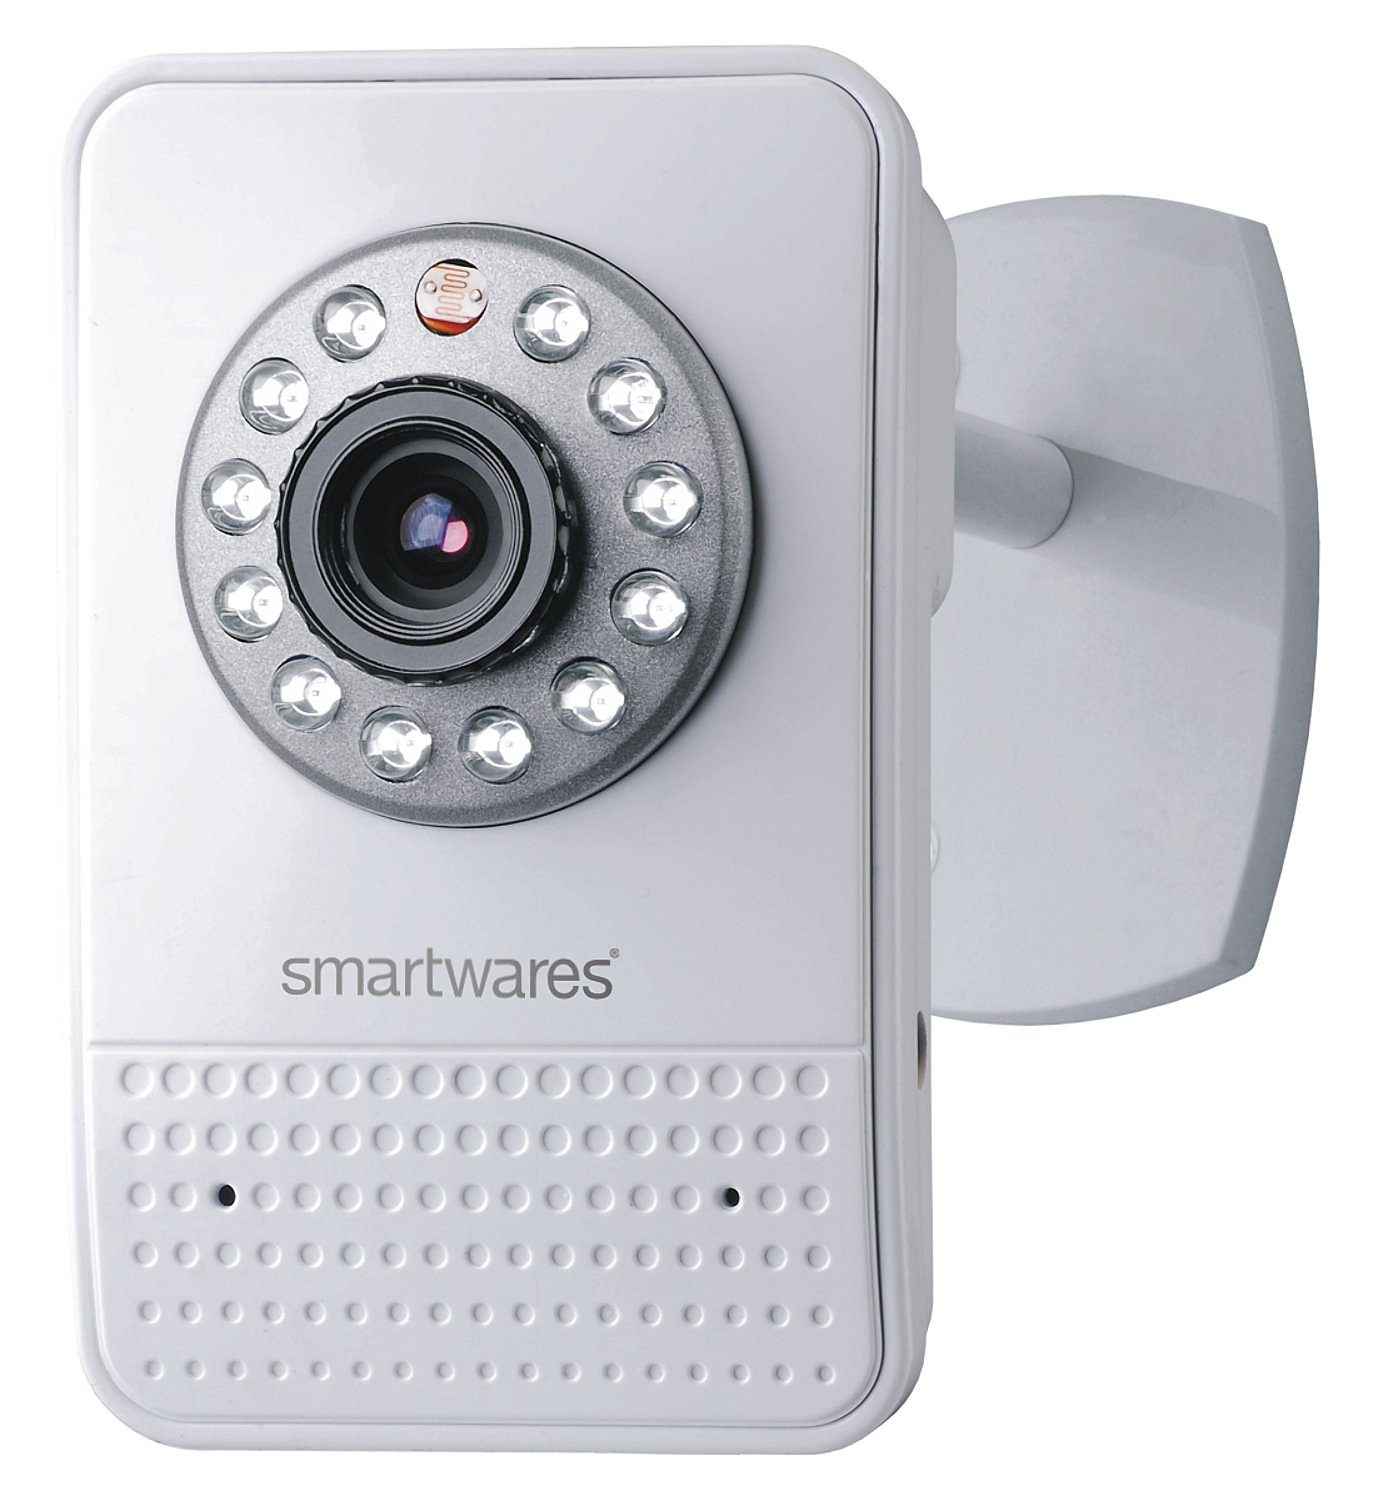 smartwares Smart Home Sicherheit & Komfort »C723IP«